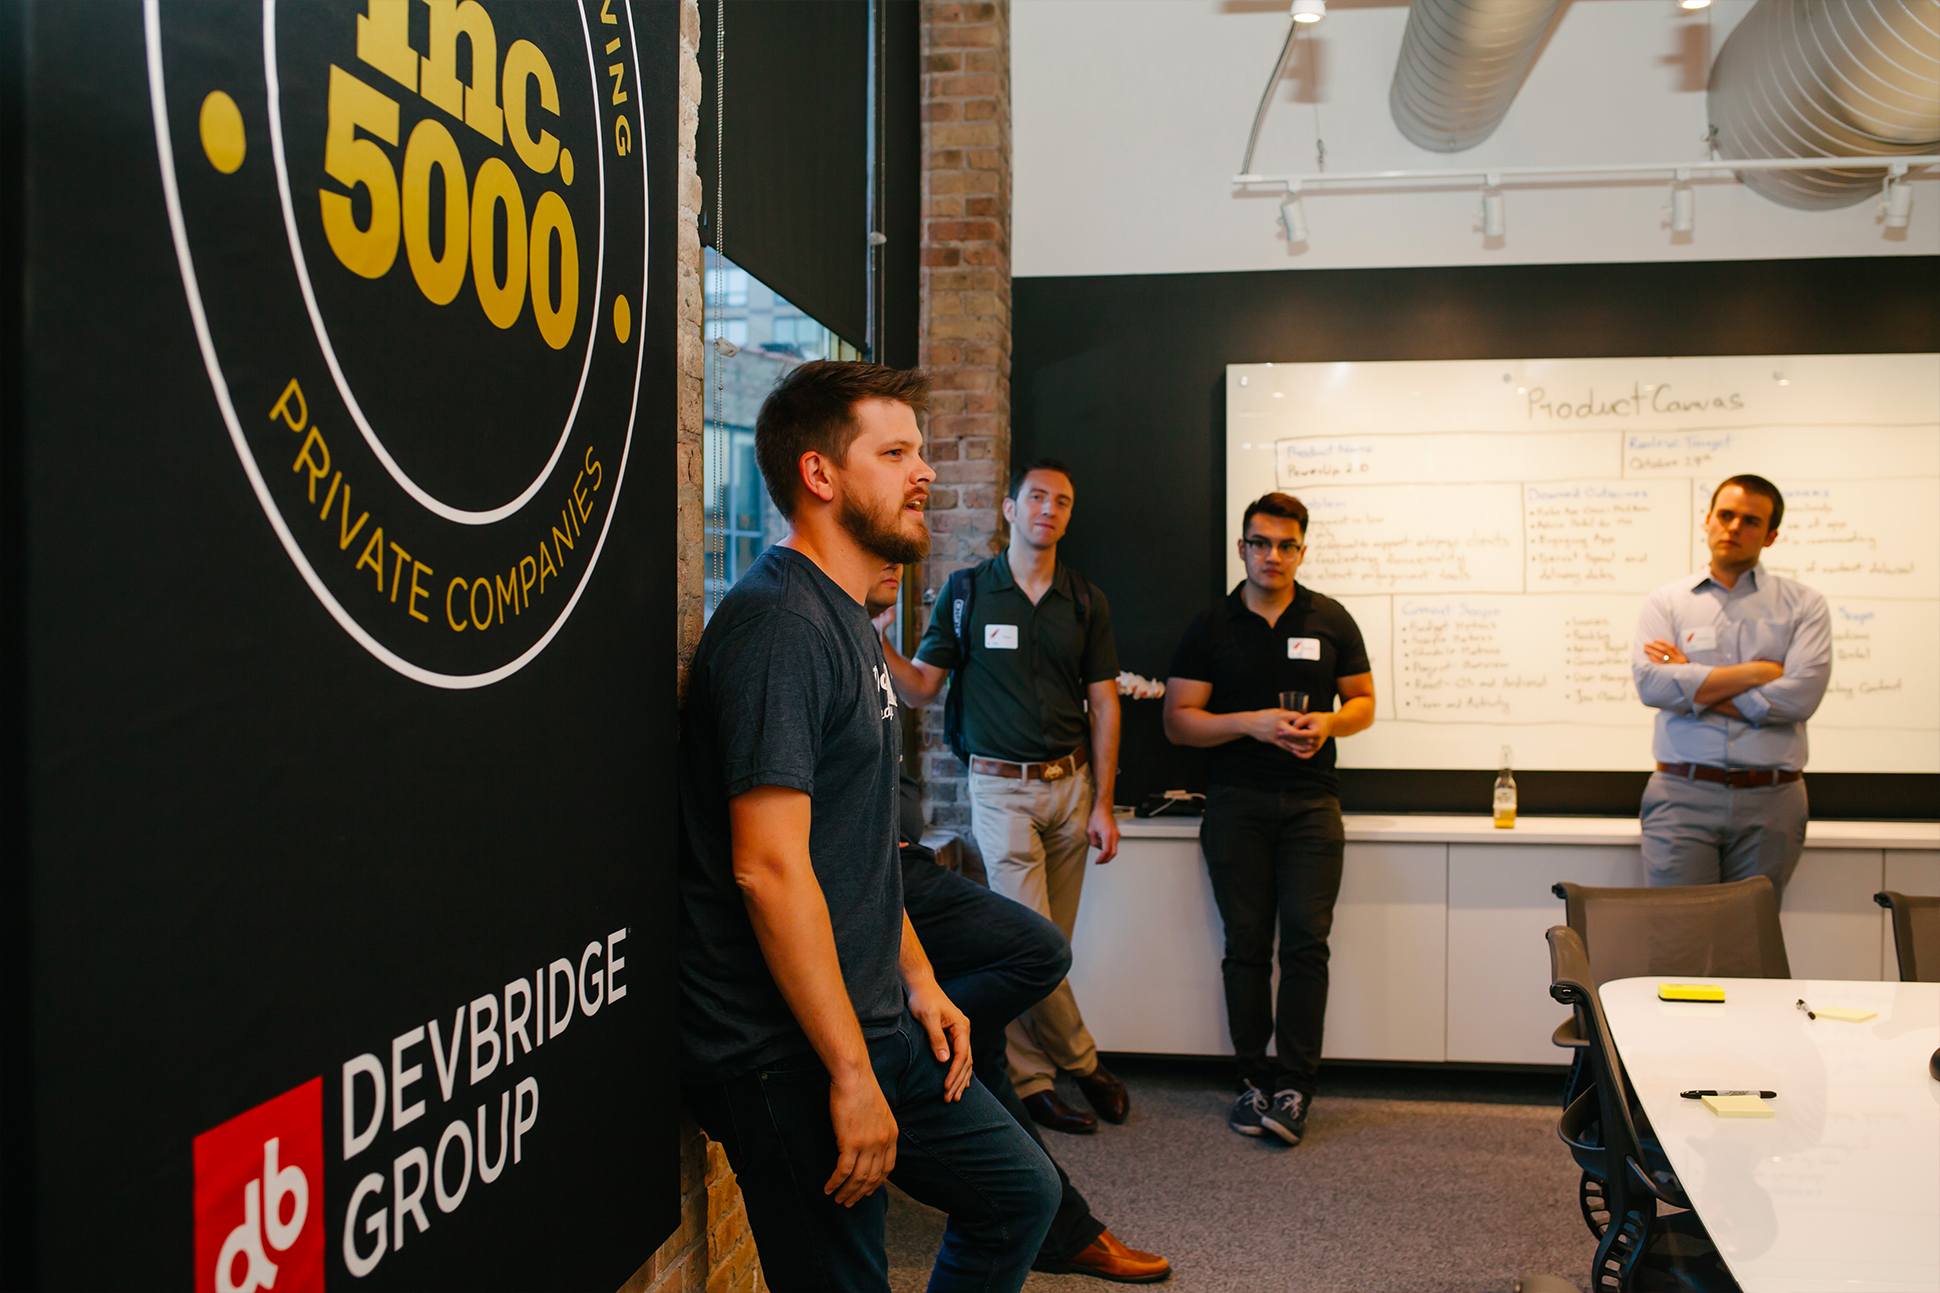 Devbridge Group named to Inc. 5000 list for sixth year in a row